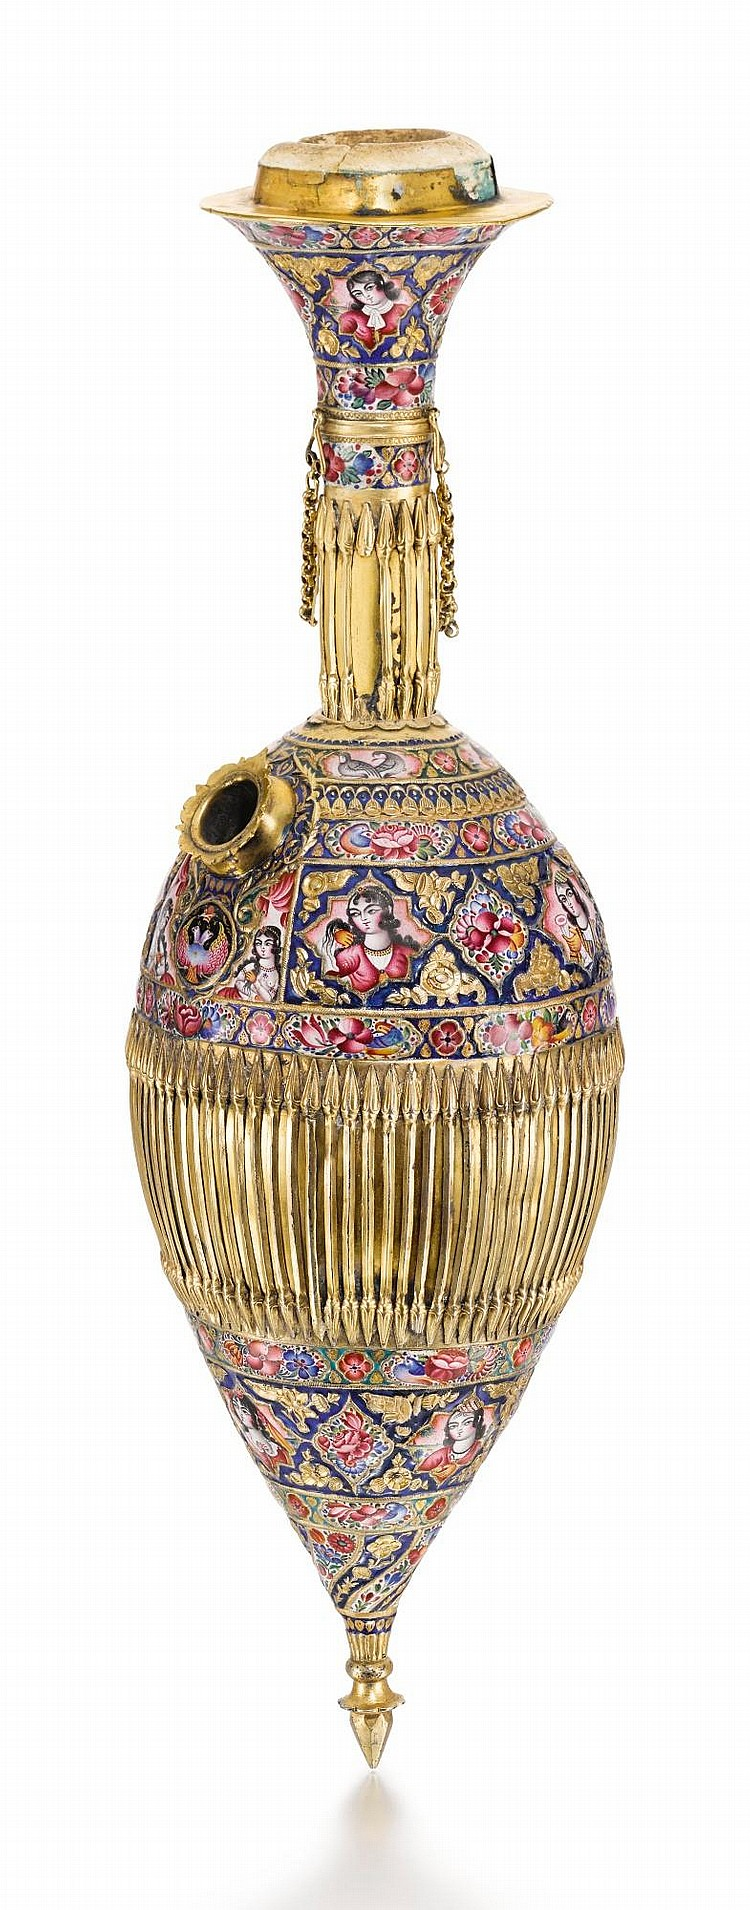 A LARGE QAJAR GOLD AND ENAMELLED GHALIAN BOTTLE SECTION AND CUP, PERSIA, 19TH CENTURY |